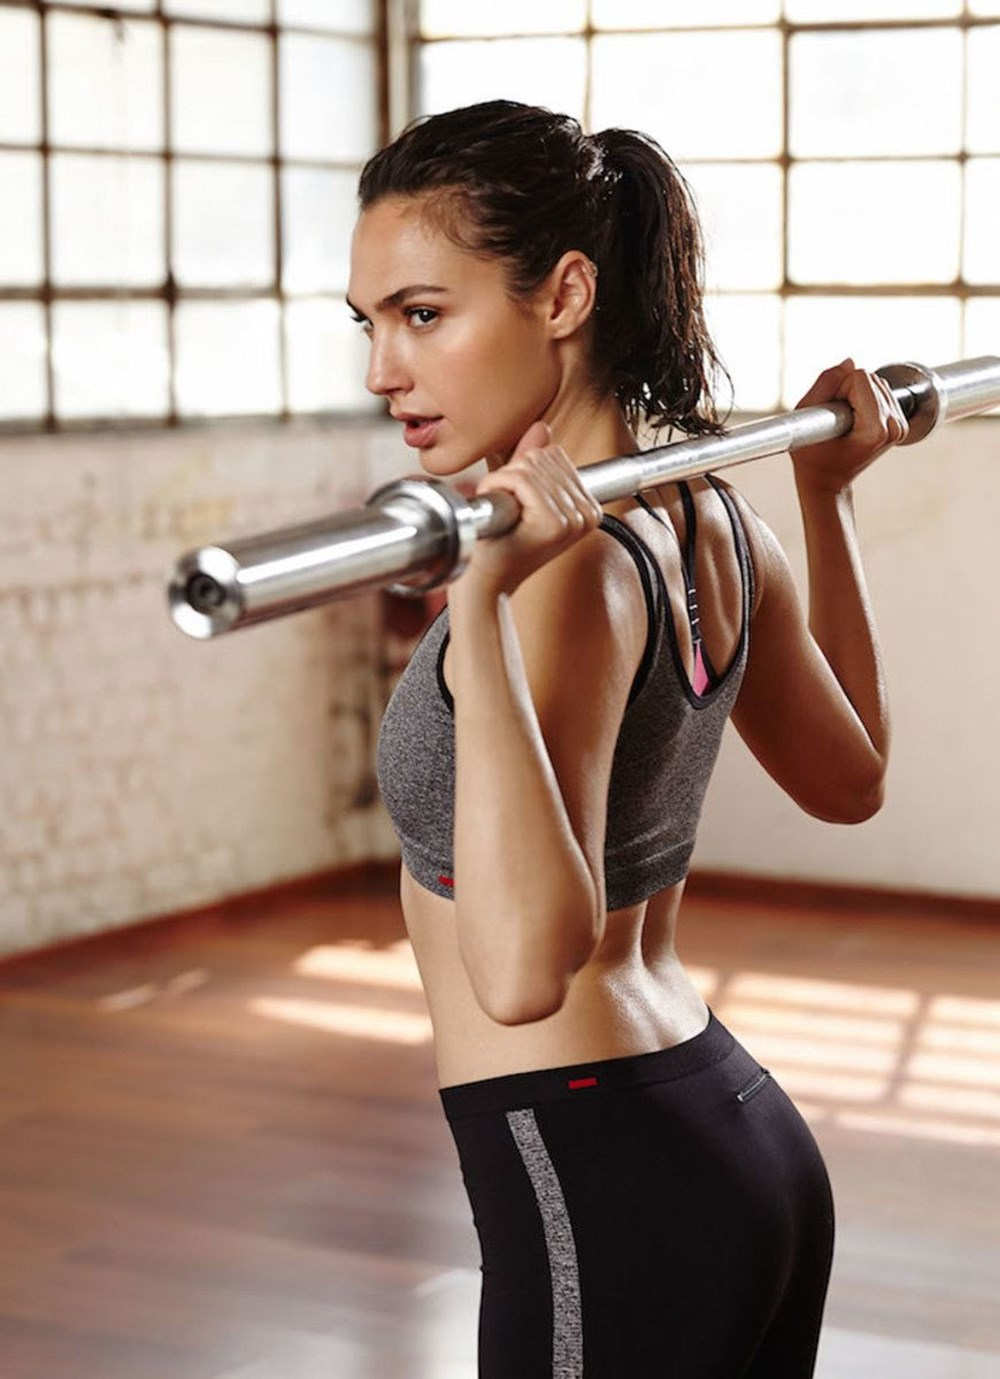 Gal Gadot Fitness Workout Pics - Gal Gadot Net Worth, Pics, Wallpapers, Career and Biography